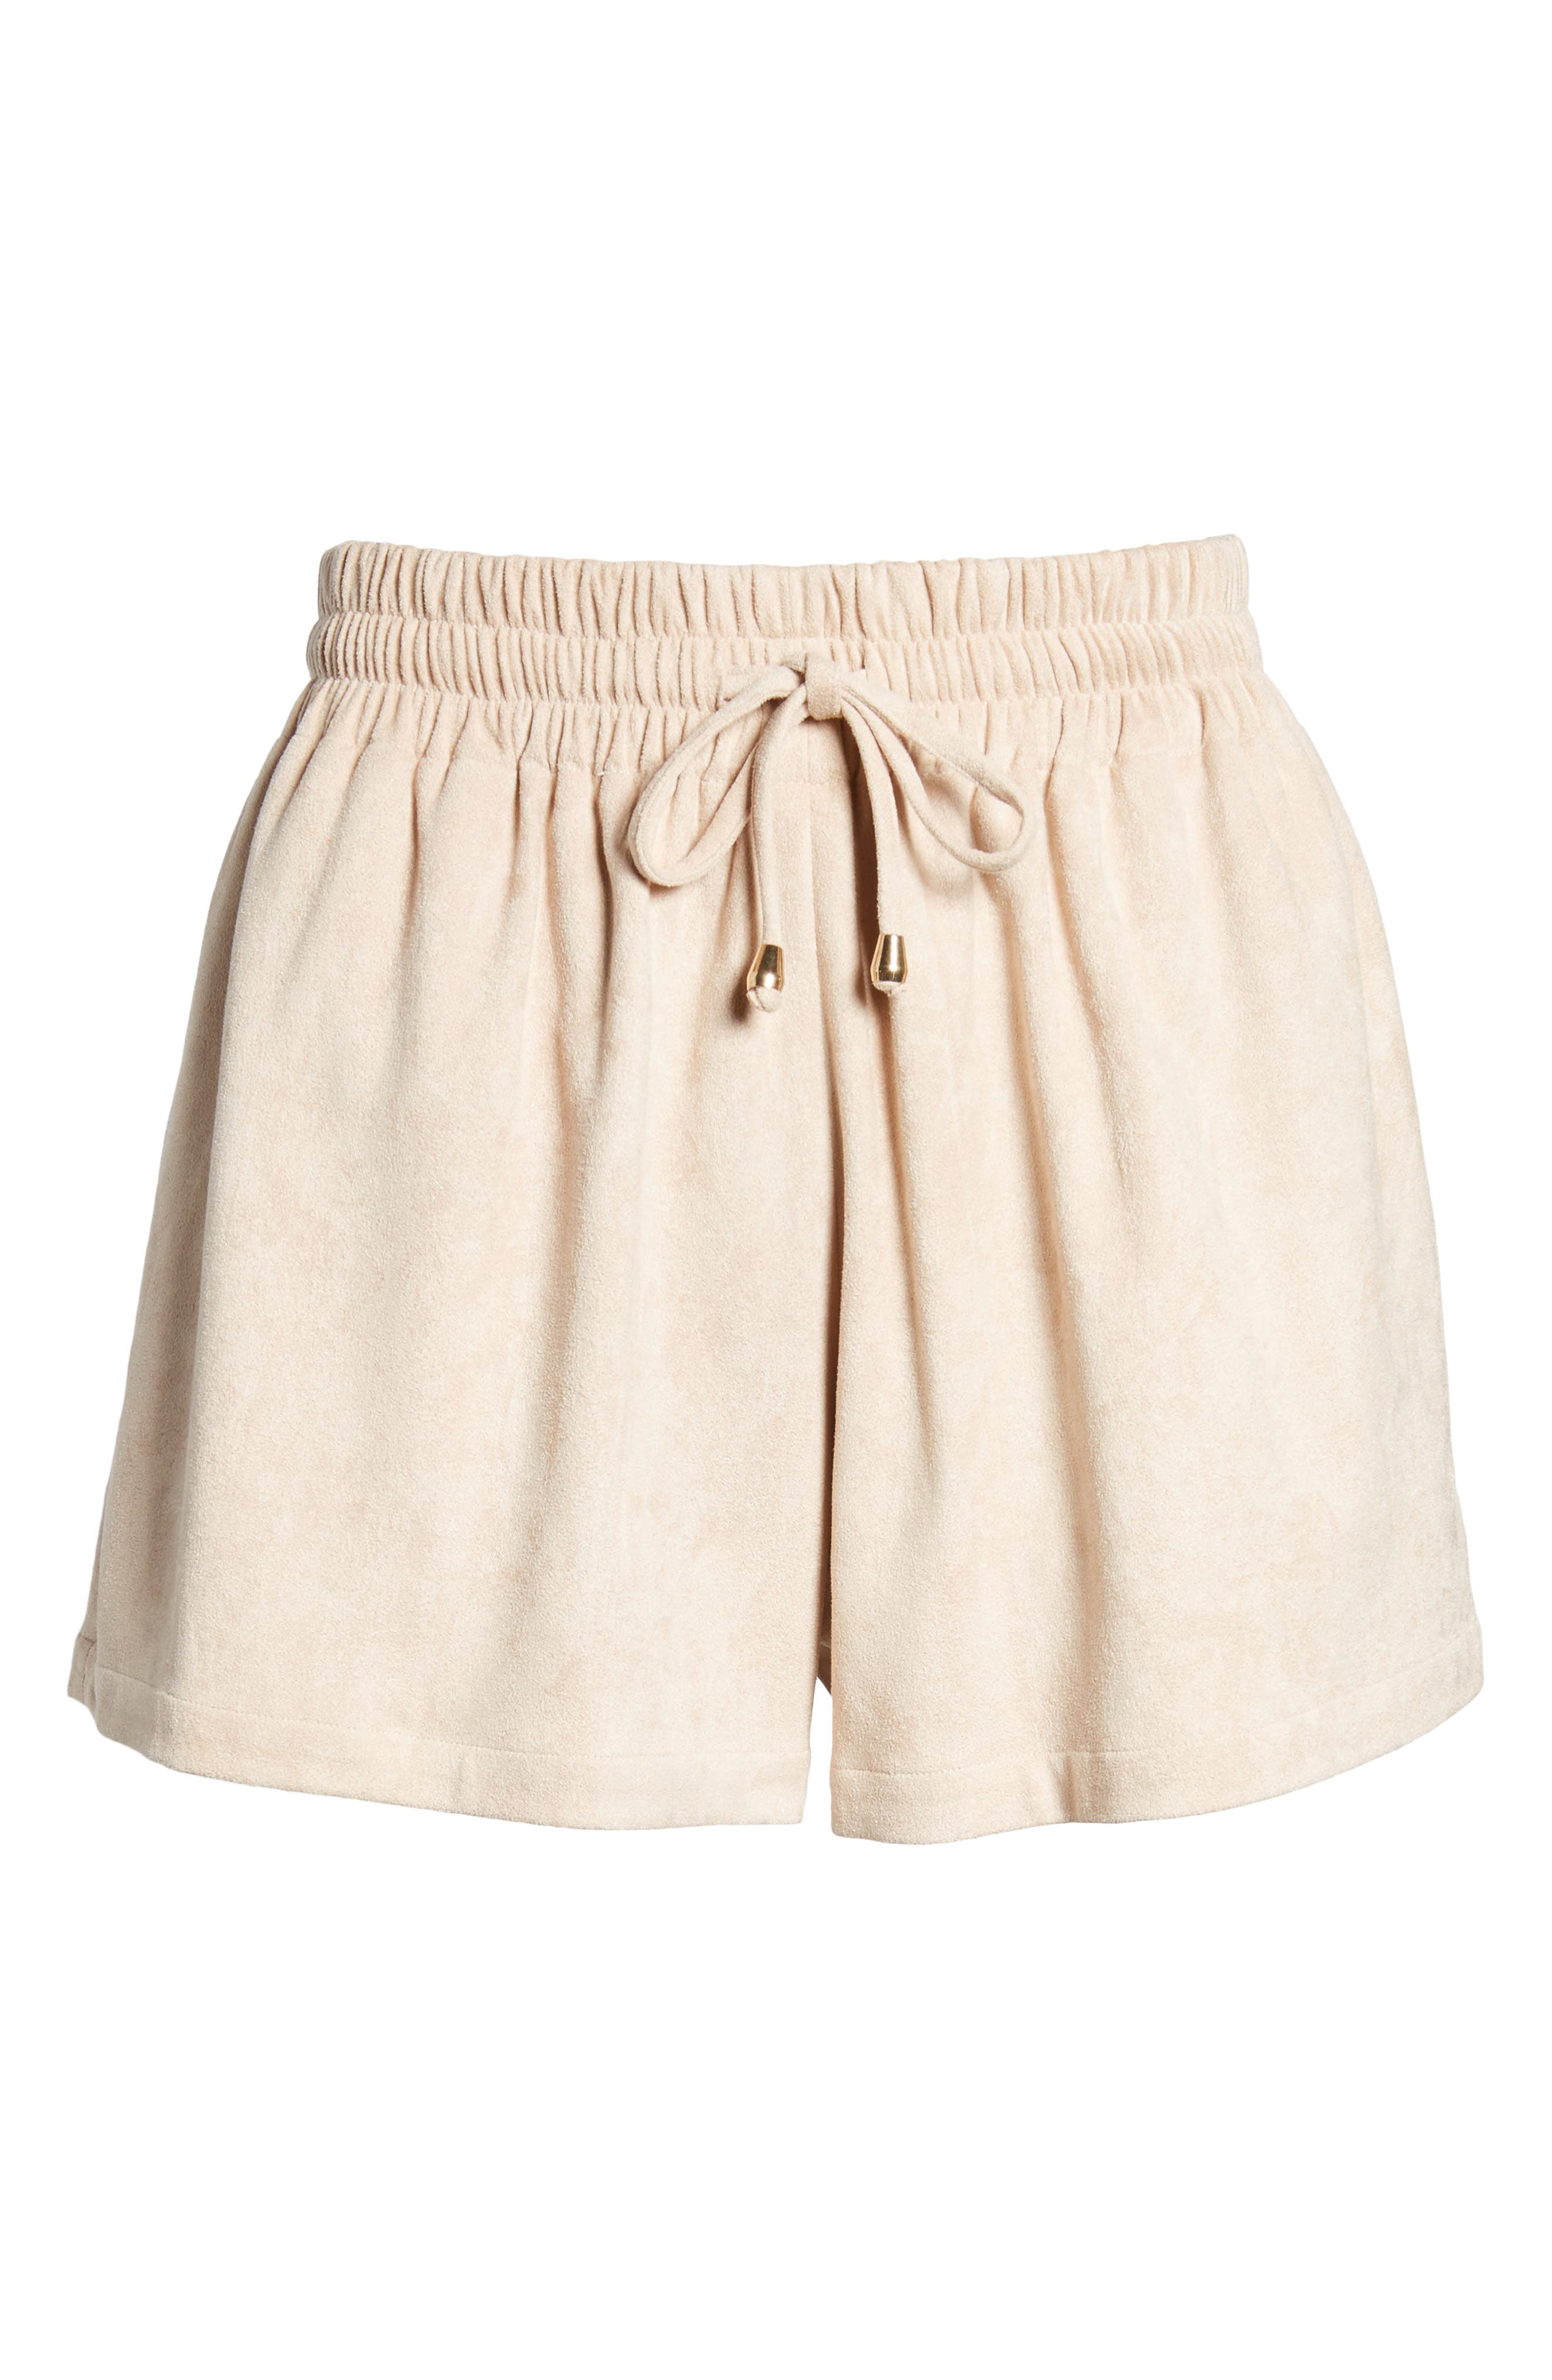 Bishop + Young Faux Suede Shorts,                             Alternate thumbnail 6, color,                             650